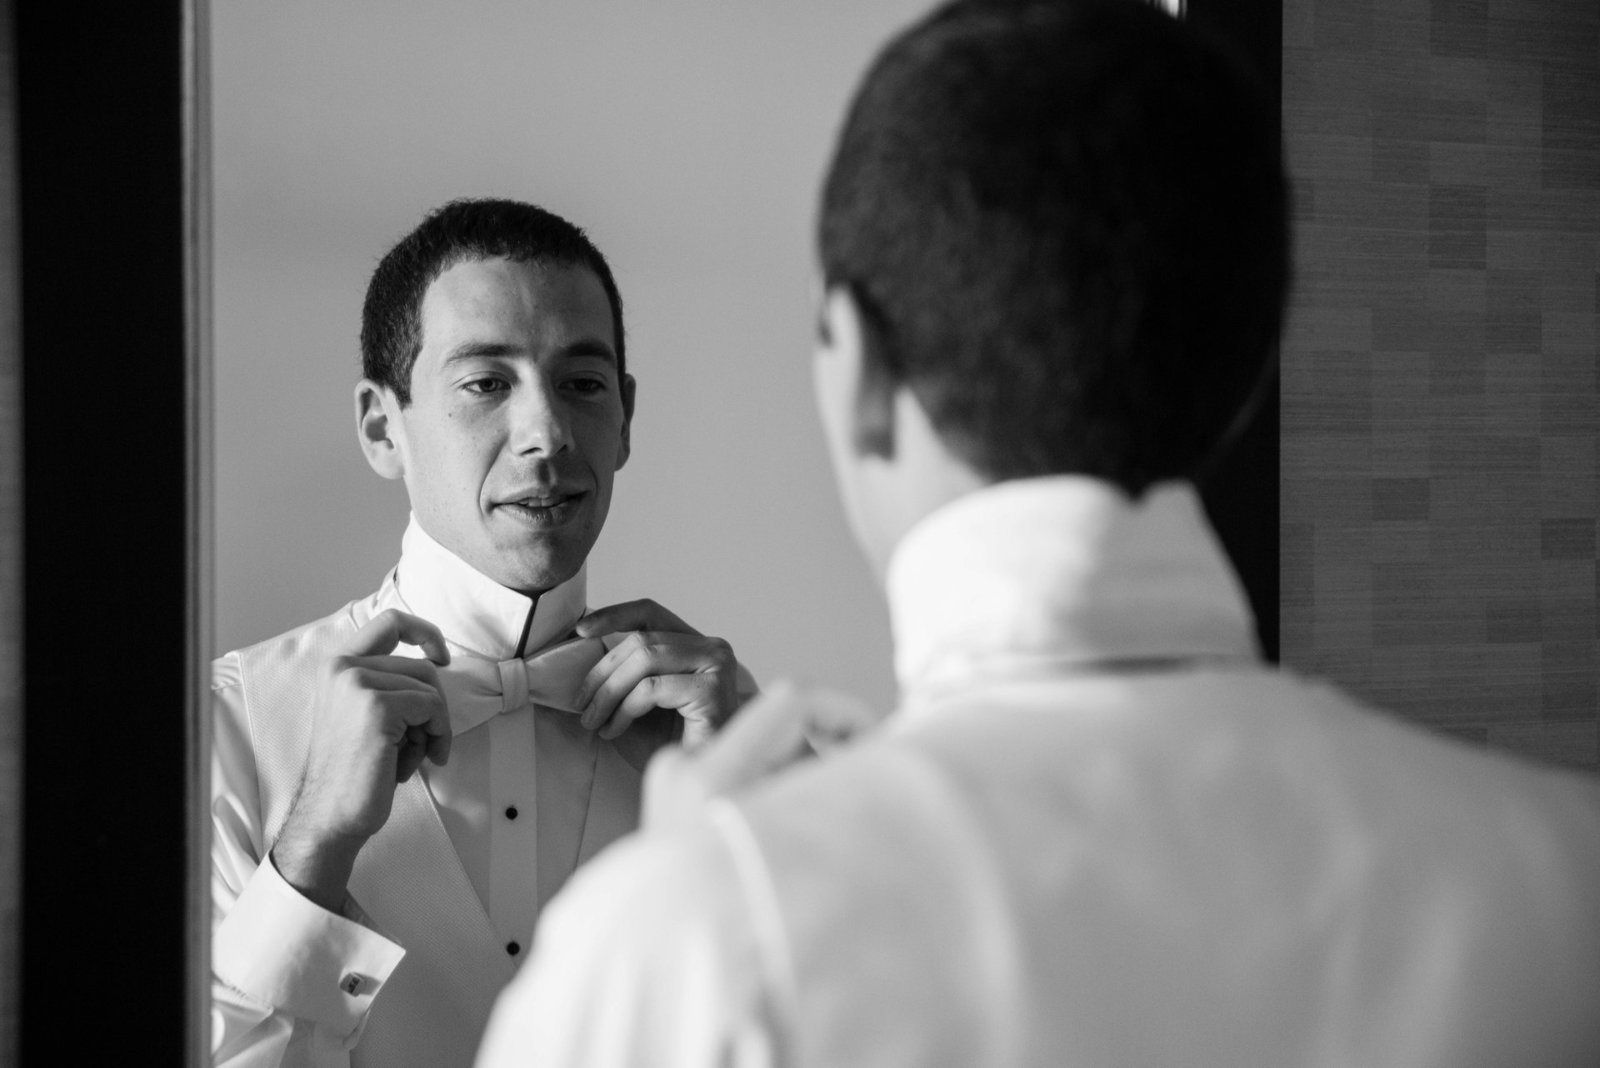 groom-nervous-getting-ready-on-wedding-day